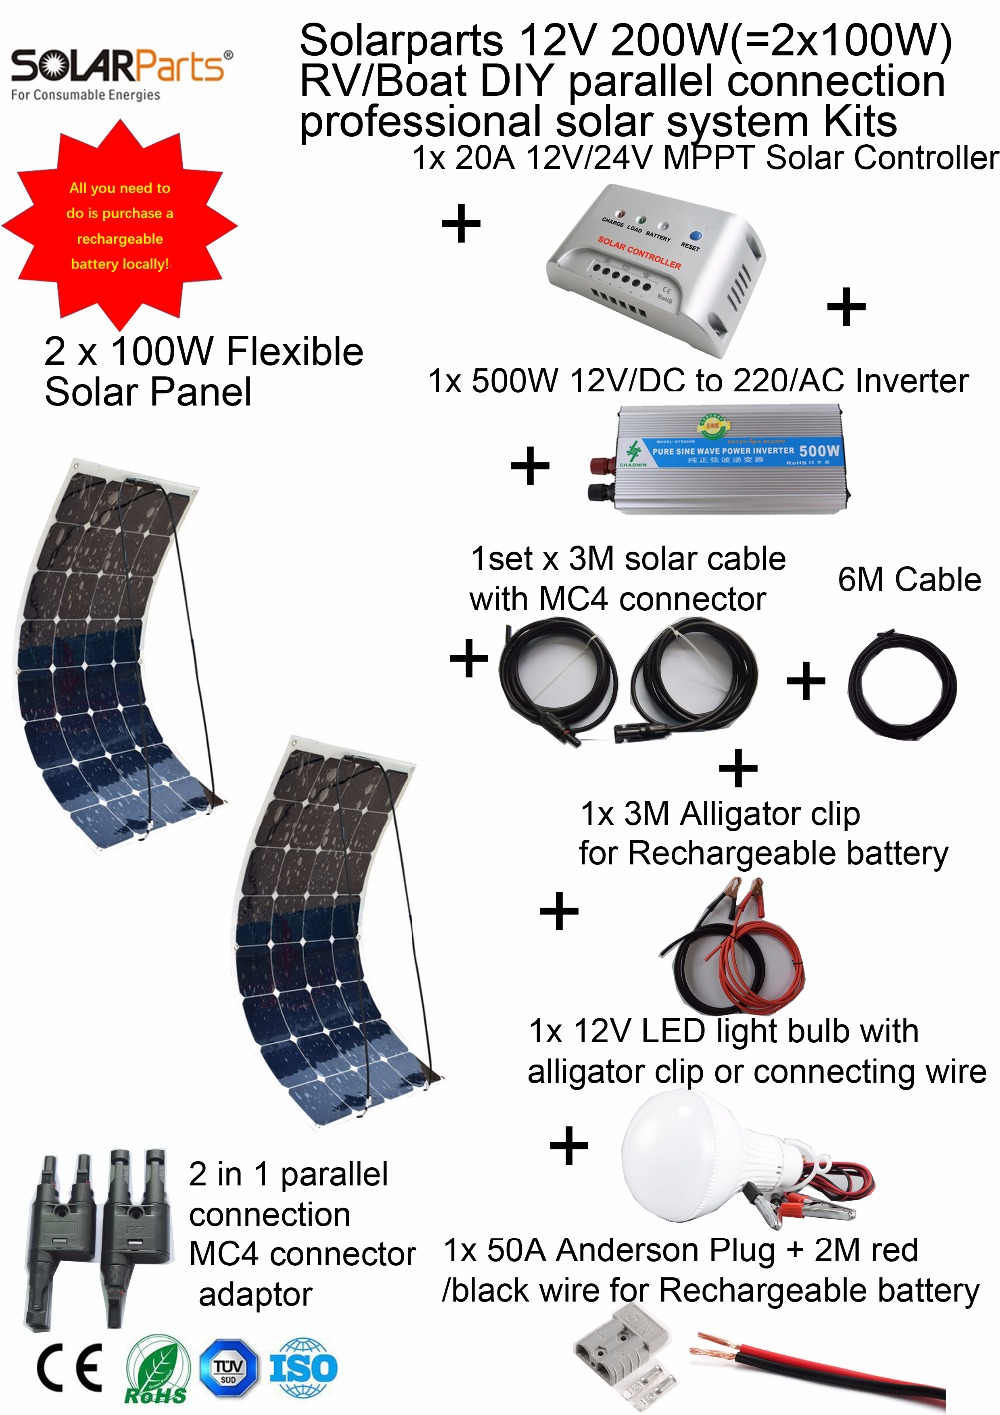 Solarparts 1x200W Professional DIY RV/Boat/Marine Kit Solar Home System sun power flexible solar panel MPPT controller Inverter solarparts 100w diy rv marine kits solar system1x100w flexible solar panel 12v 1 x10a 12v 24v solar controller set cables cheap